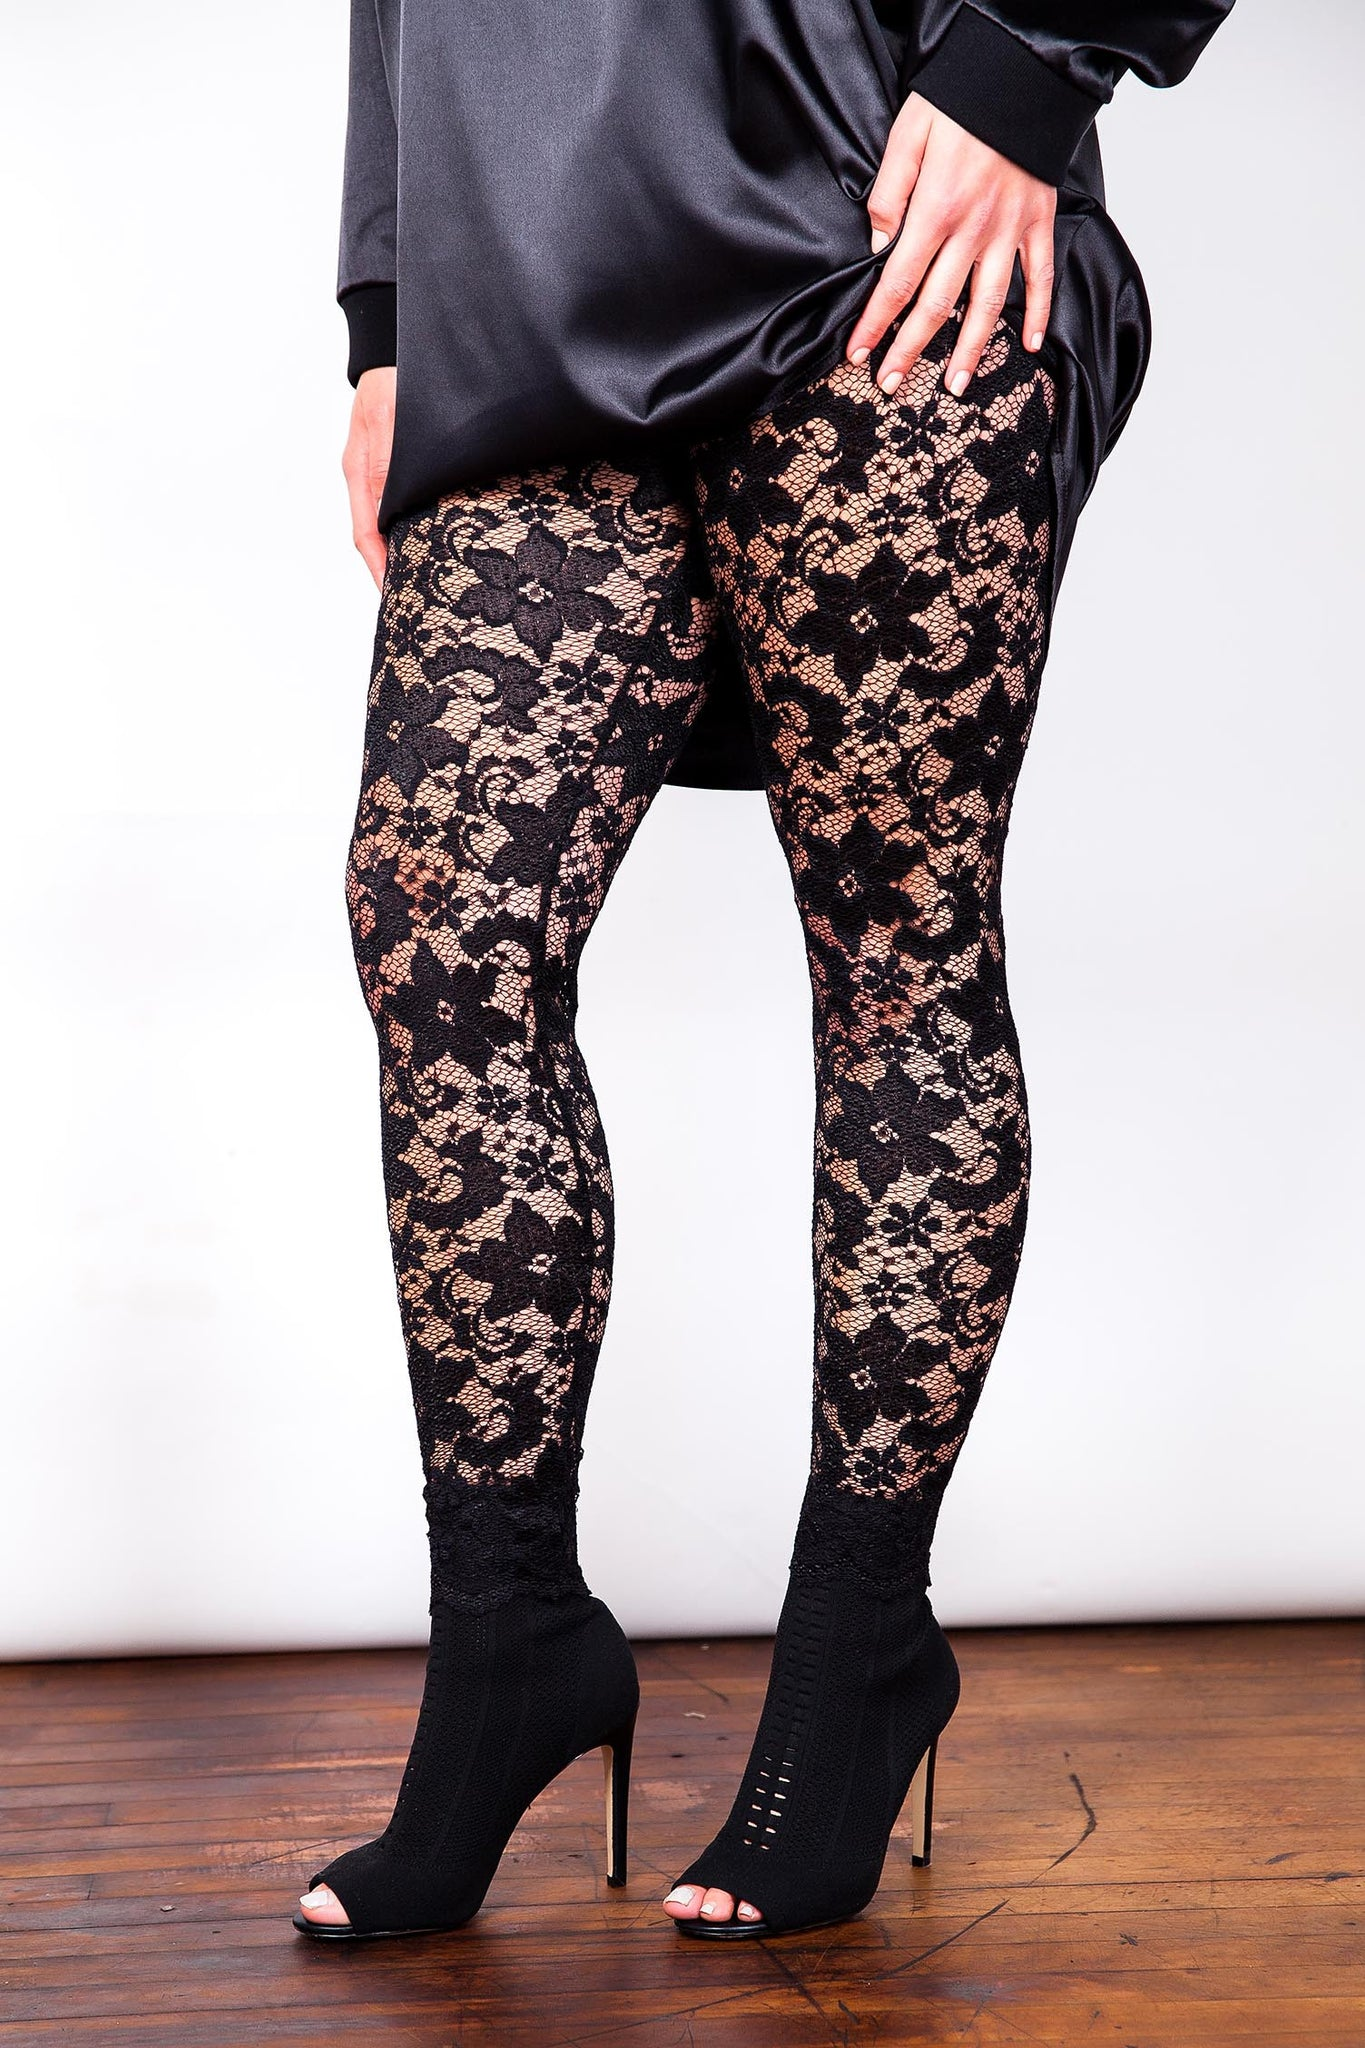 Black Stretch Sheer Lace Leggings